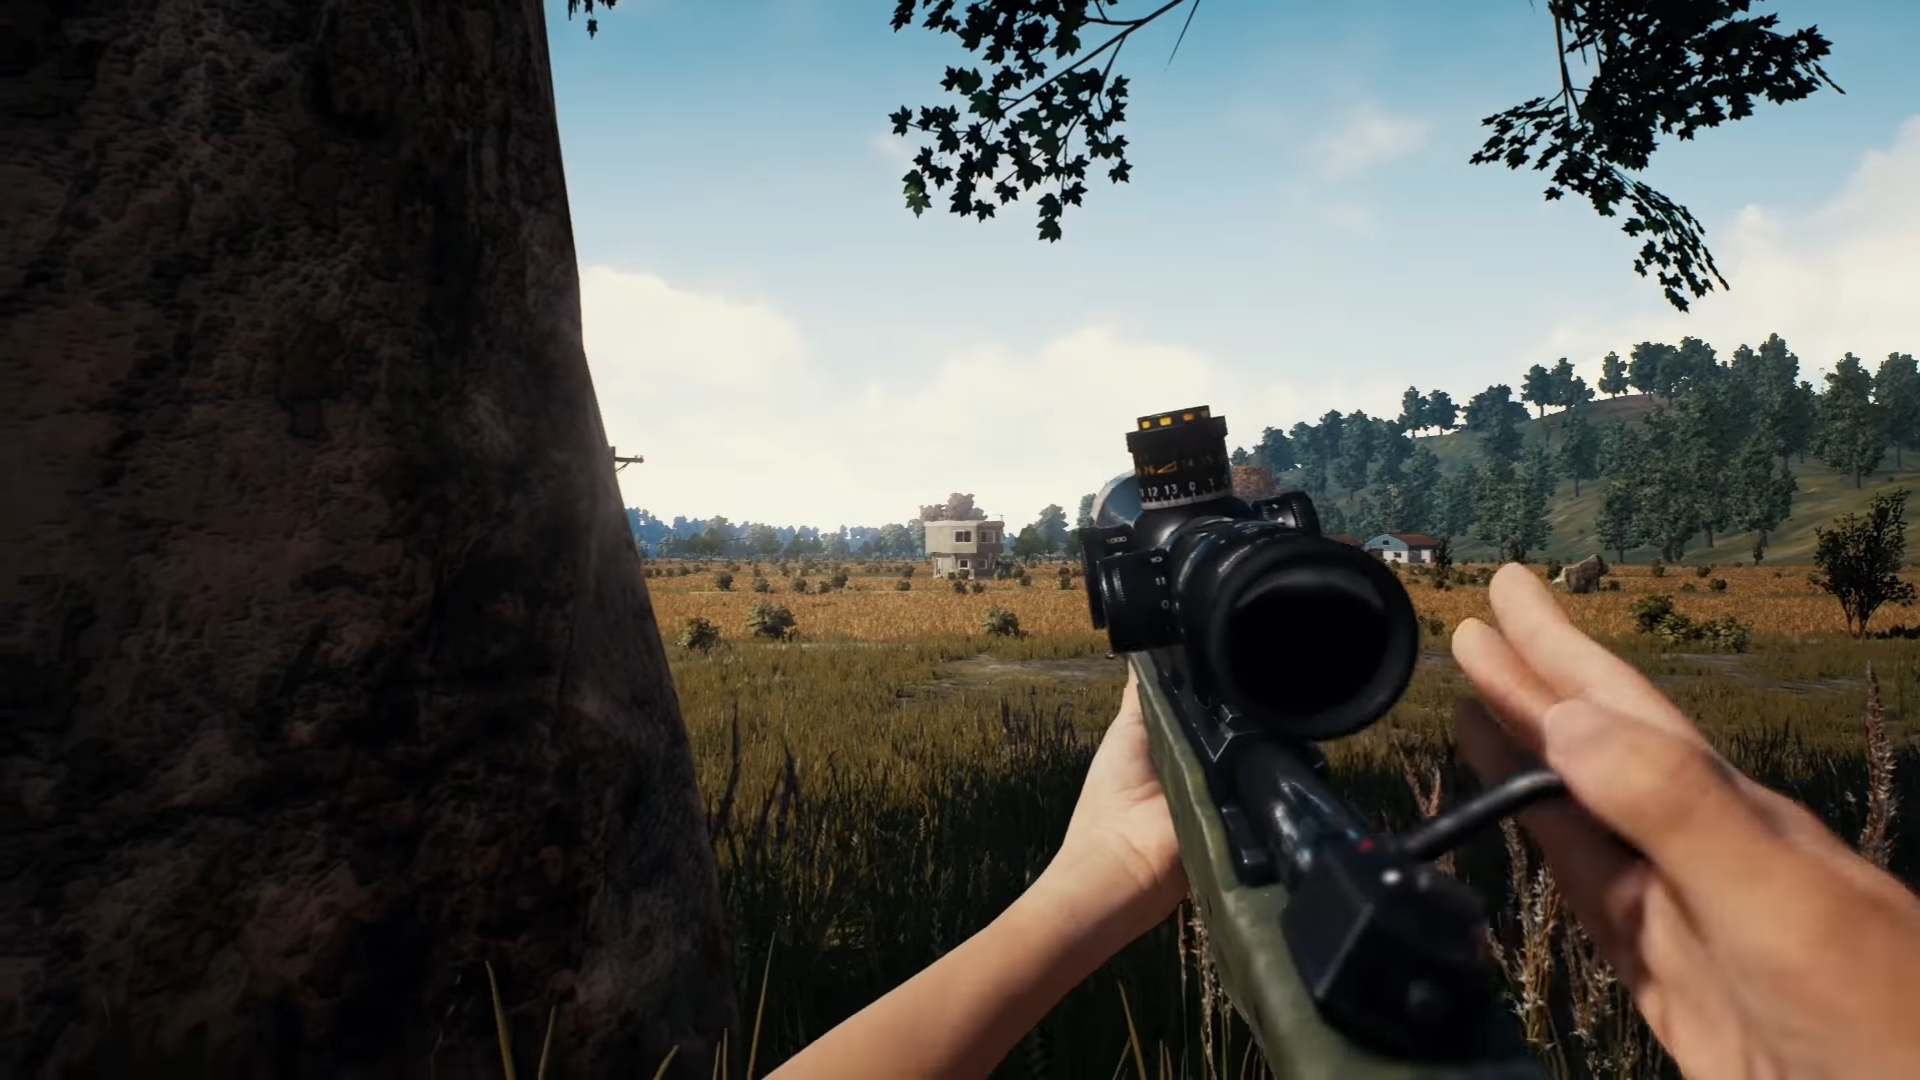 Pubg Sniper Wallpaper Engine: The Best Sniper Rifles In PUBG And Where To Find Them